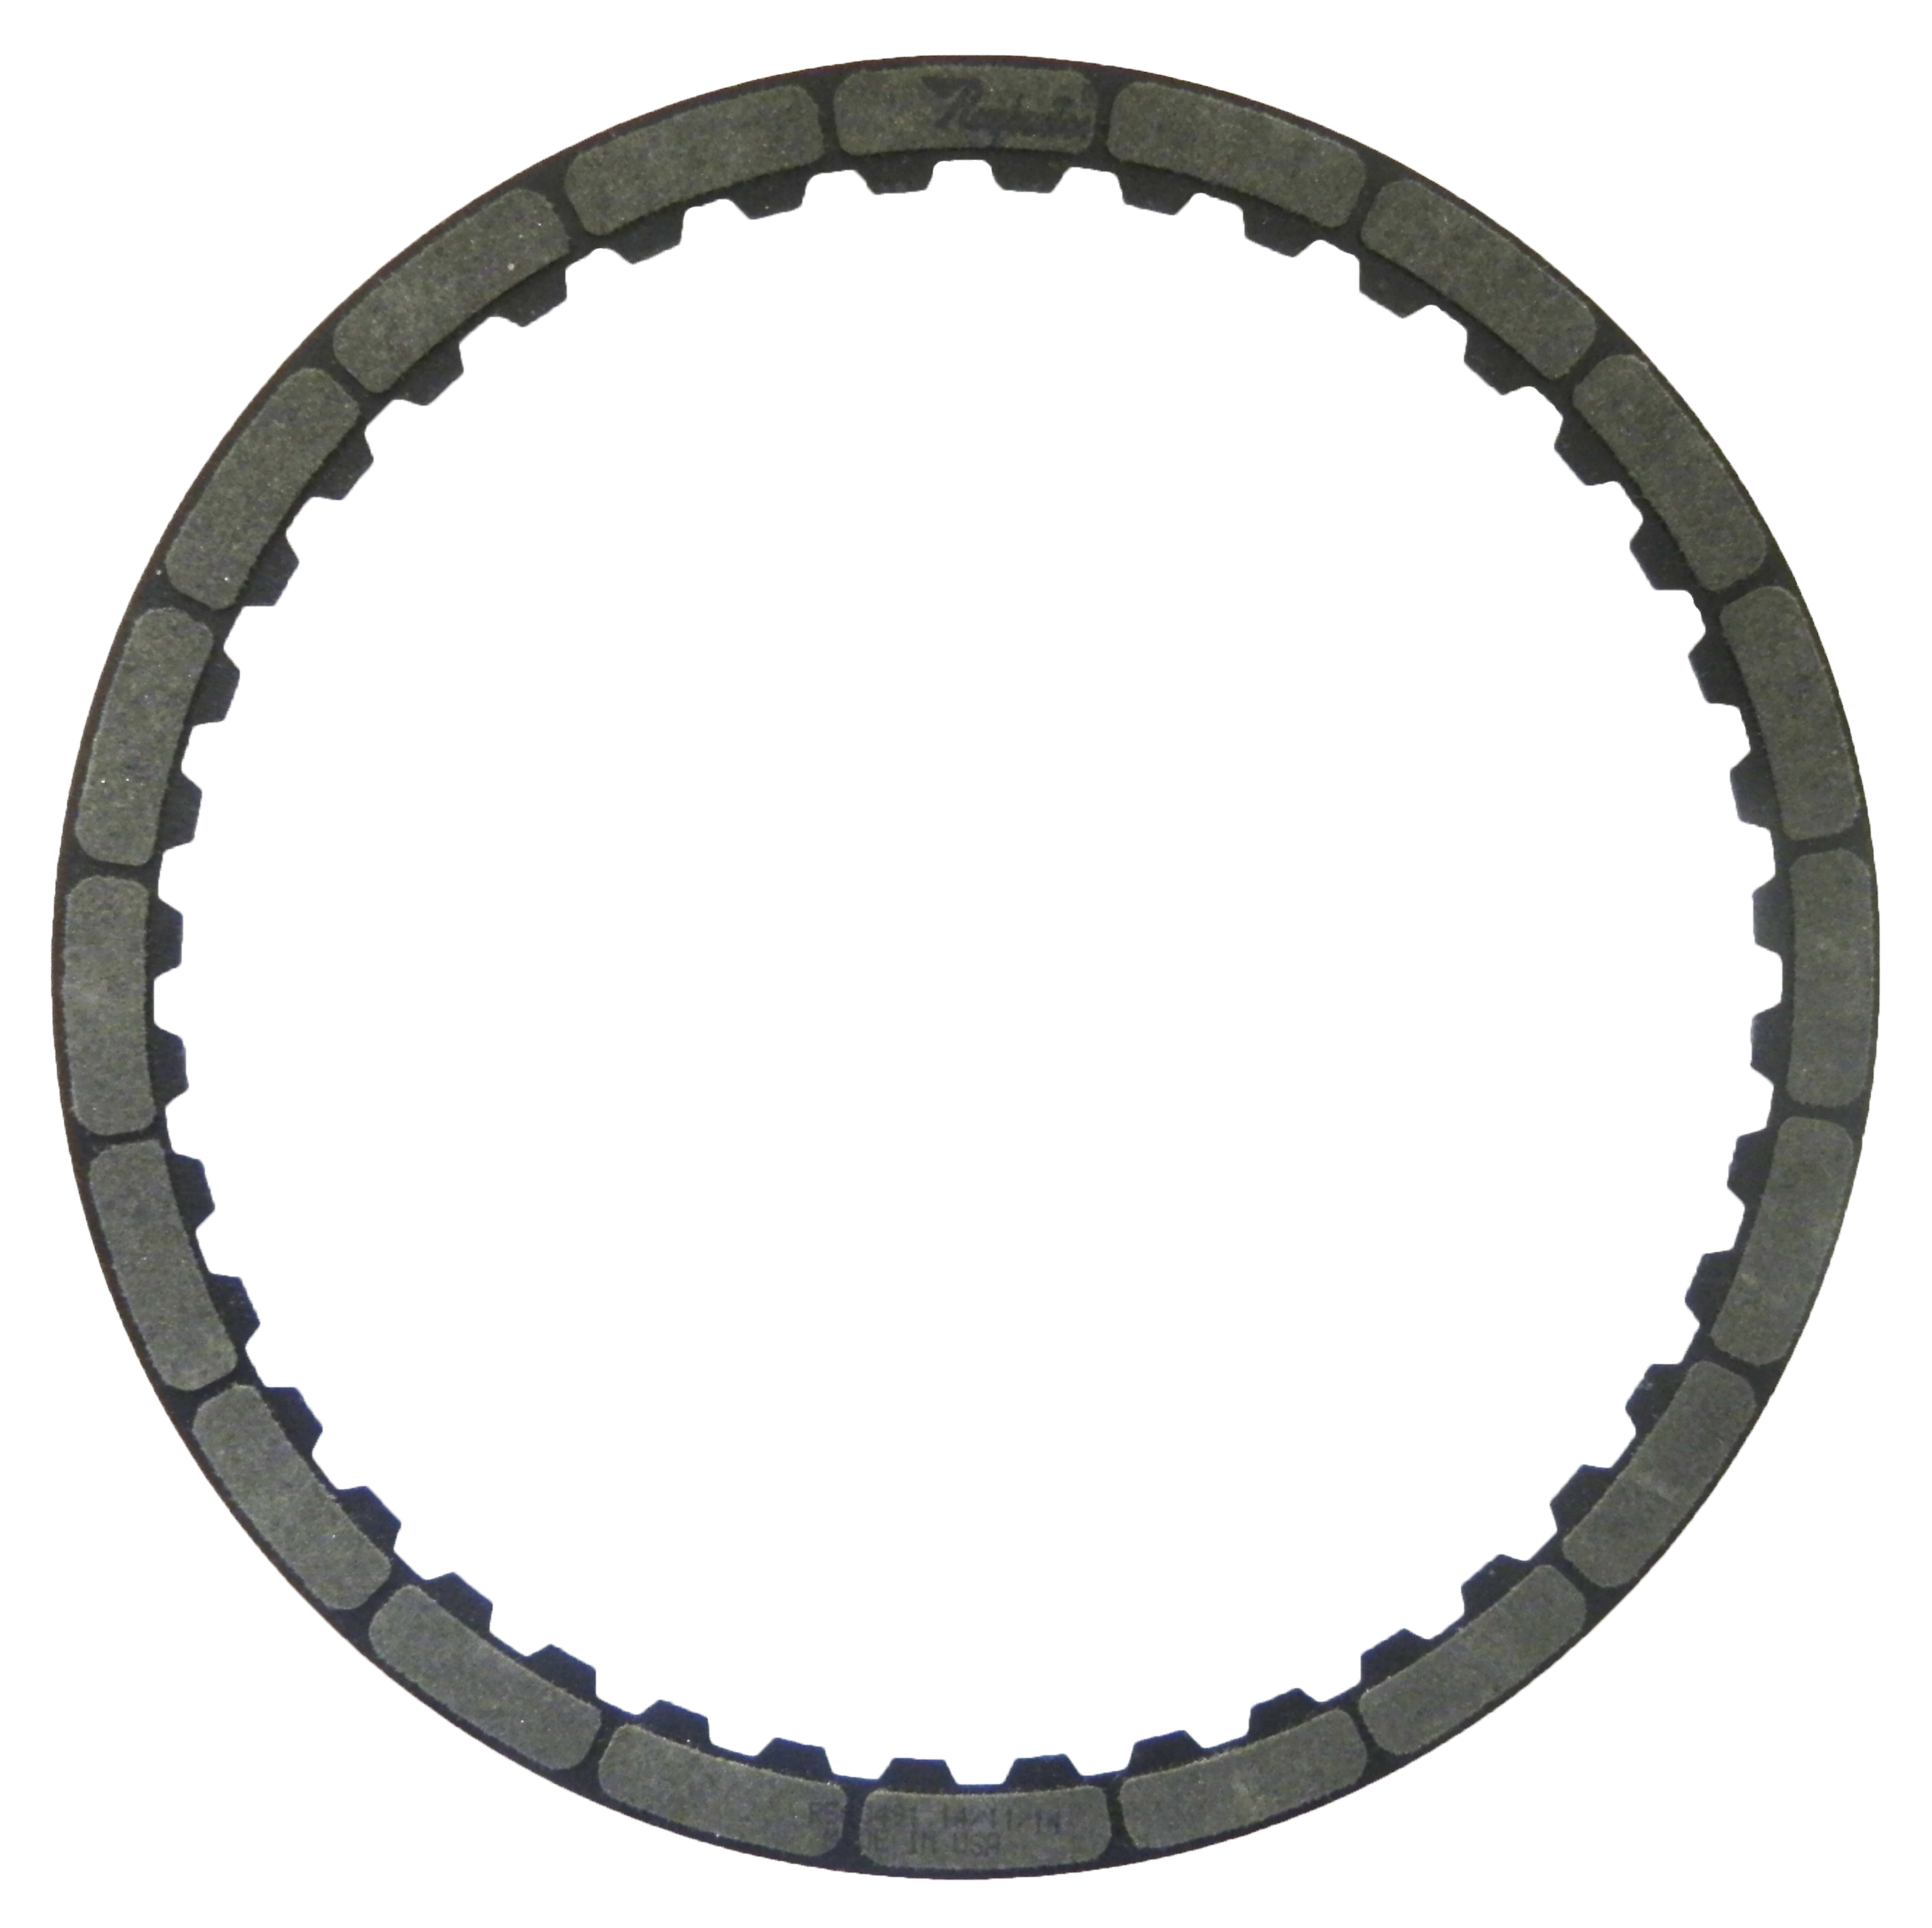 R560491 | 2007-ON Friction Clutch Plate High Energy B1 Reverse (5-6) (#1 Brake) Segmented High Energy